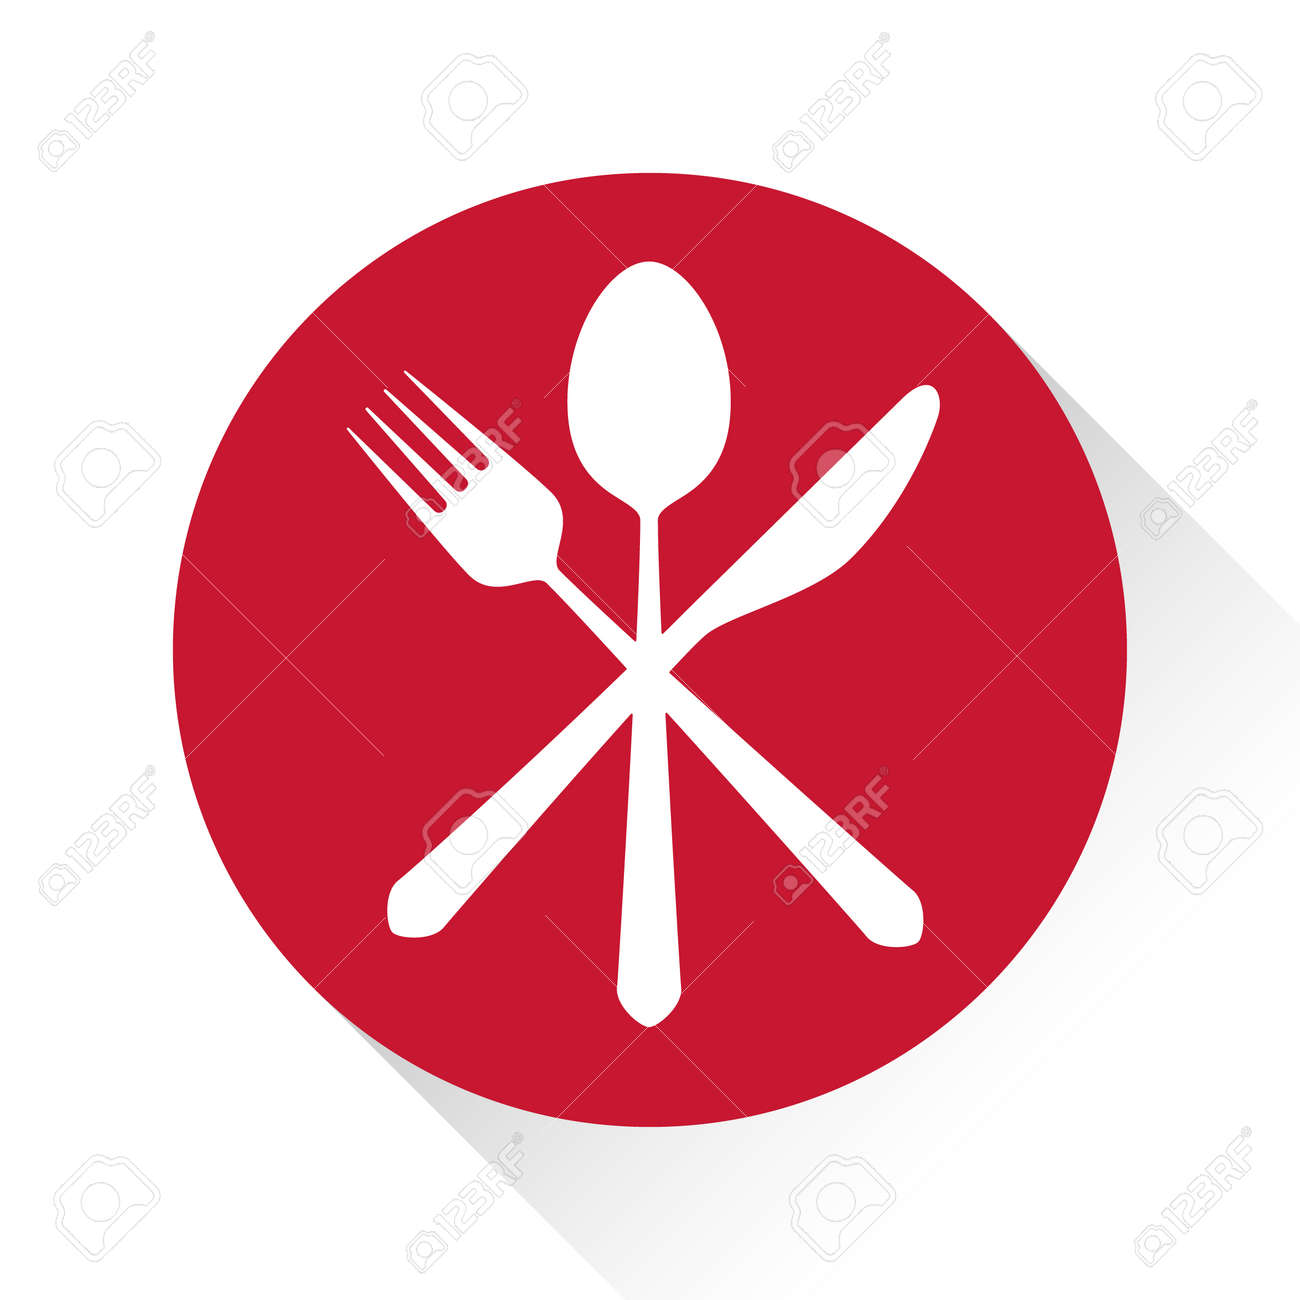 Gastronomy Restaurant Symbol Fork Knife And Spoon Logo Template